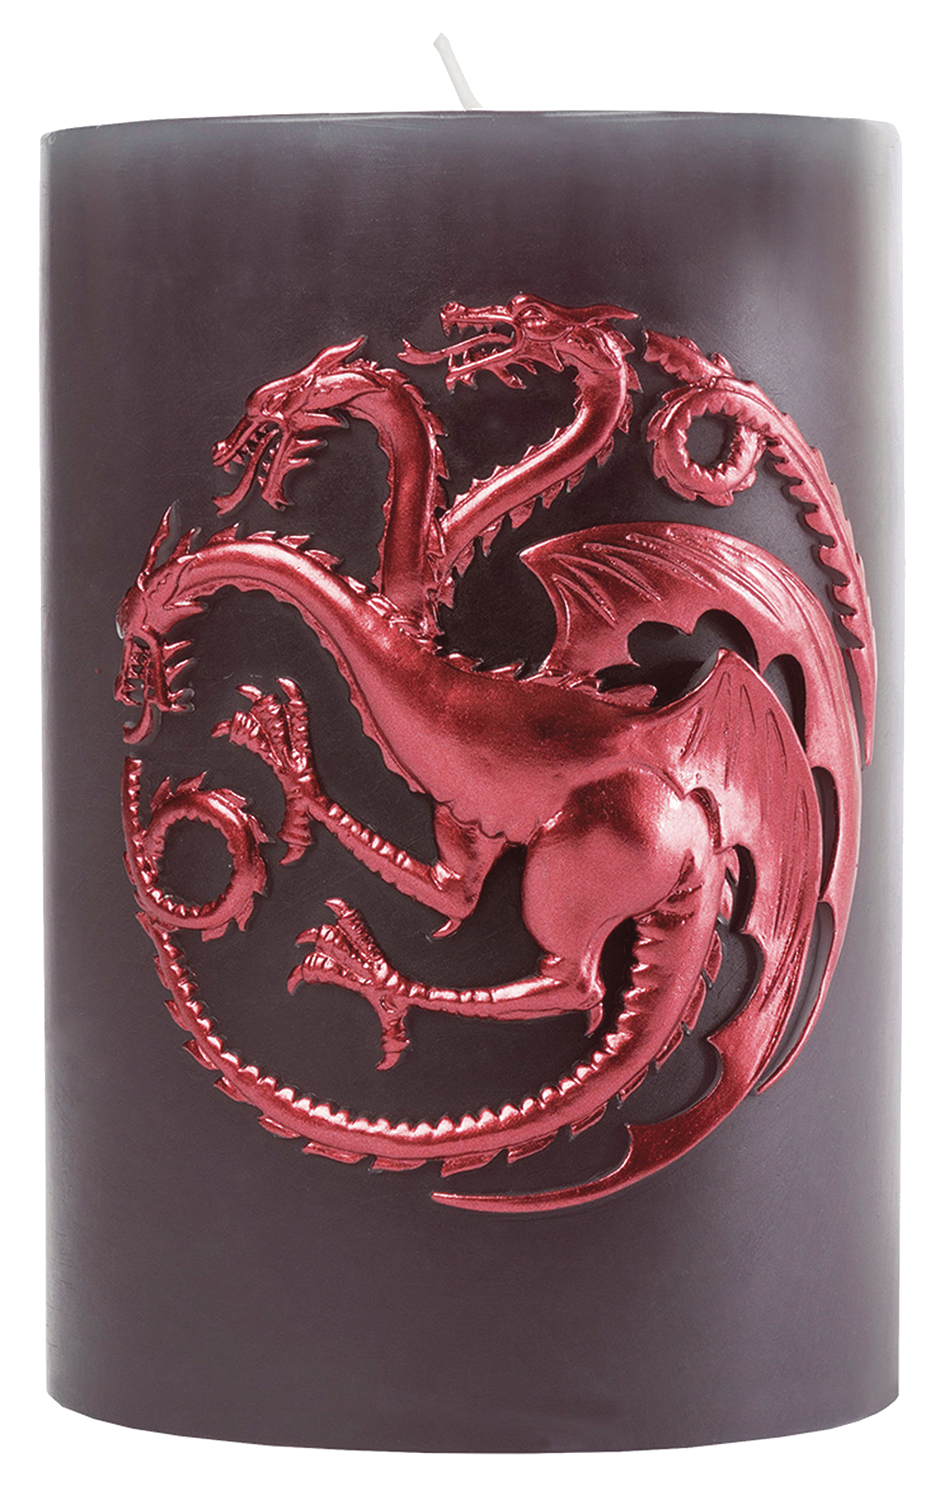 GAME OF THRONES TARGARYEN SCULPTED SIGIL CANDLE